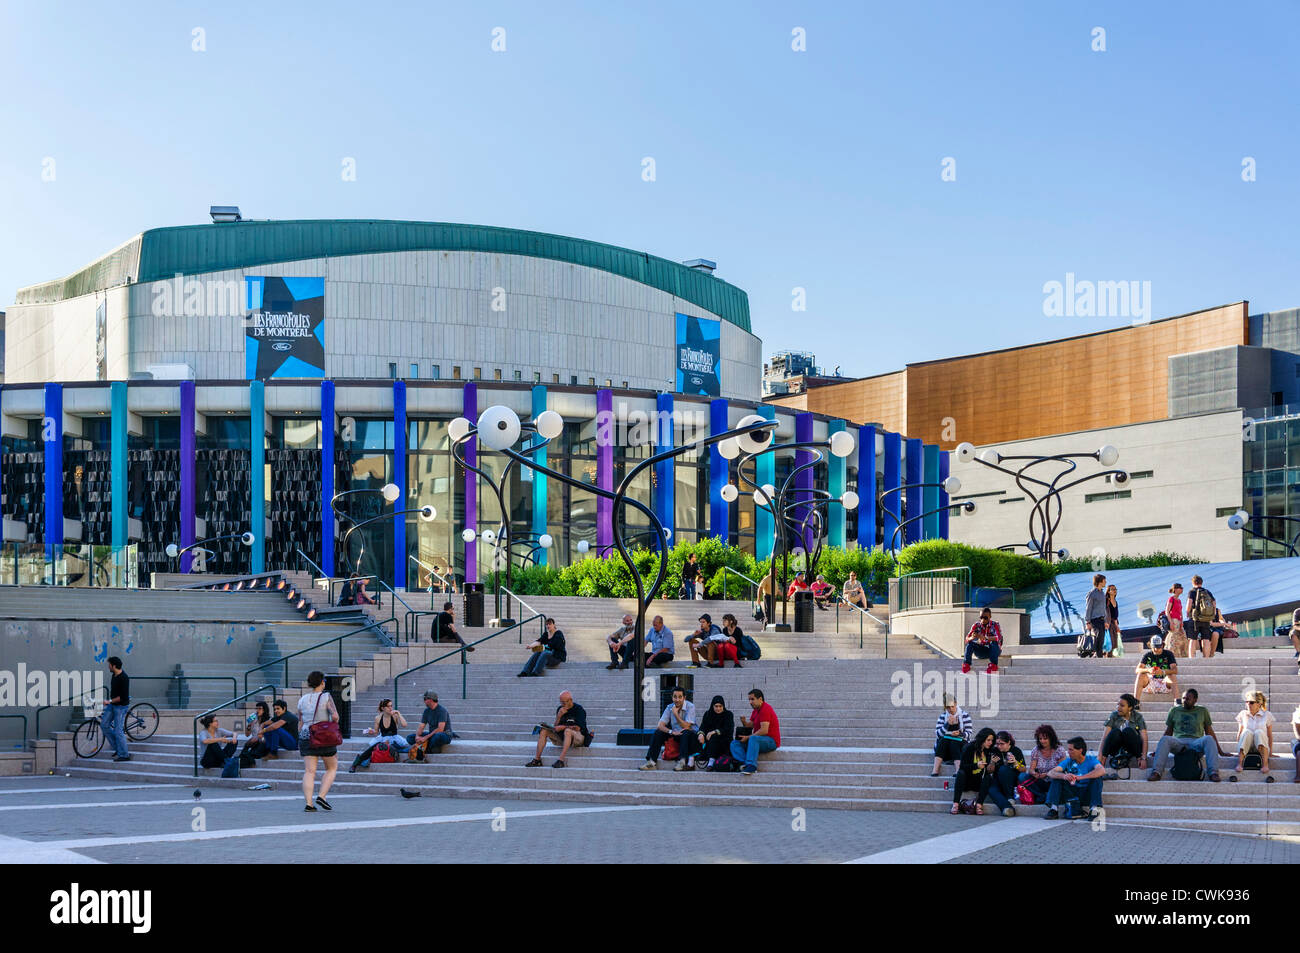 The Salle Wilfred-Pelletier in the Place des Arts, Quartier des Spectacles, Montreal, Quebec, Canada - Stock Image